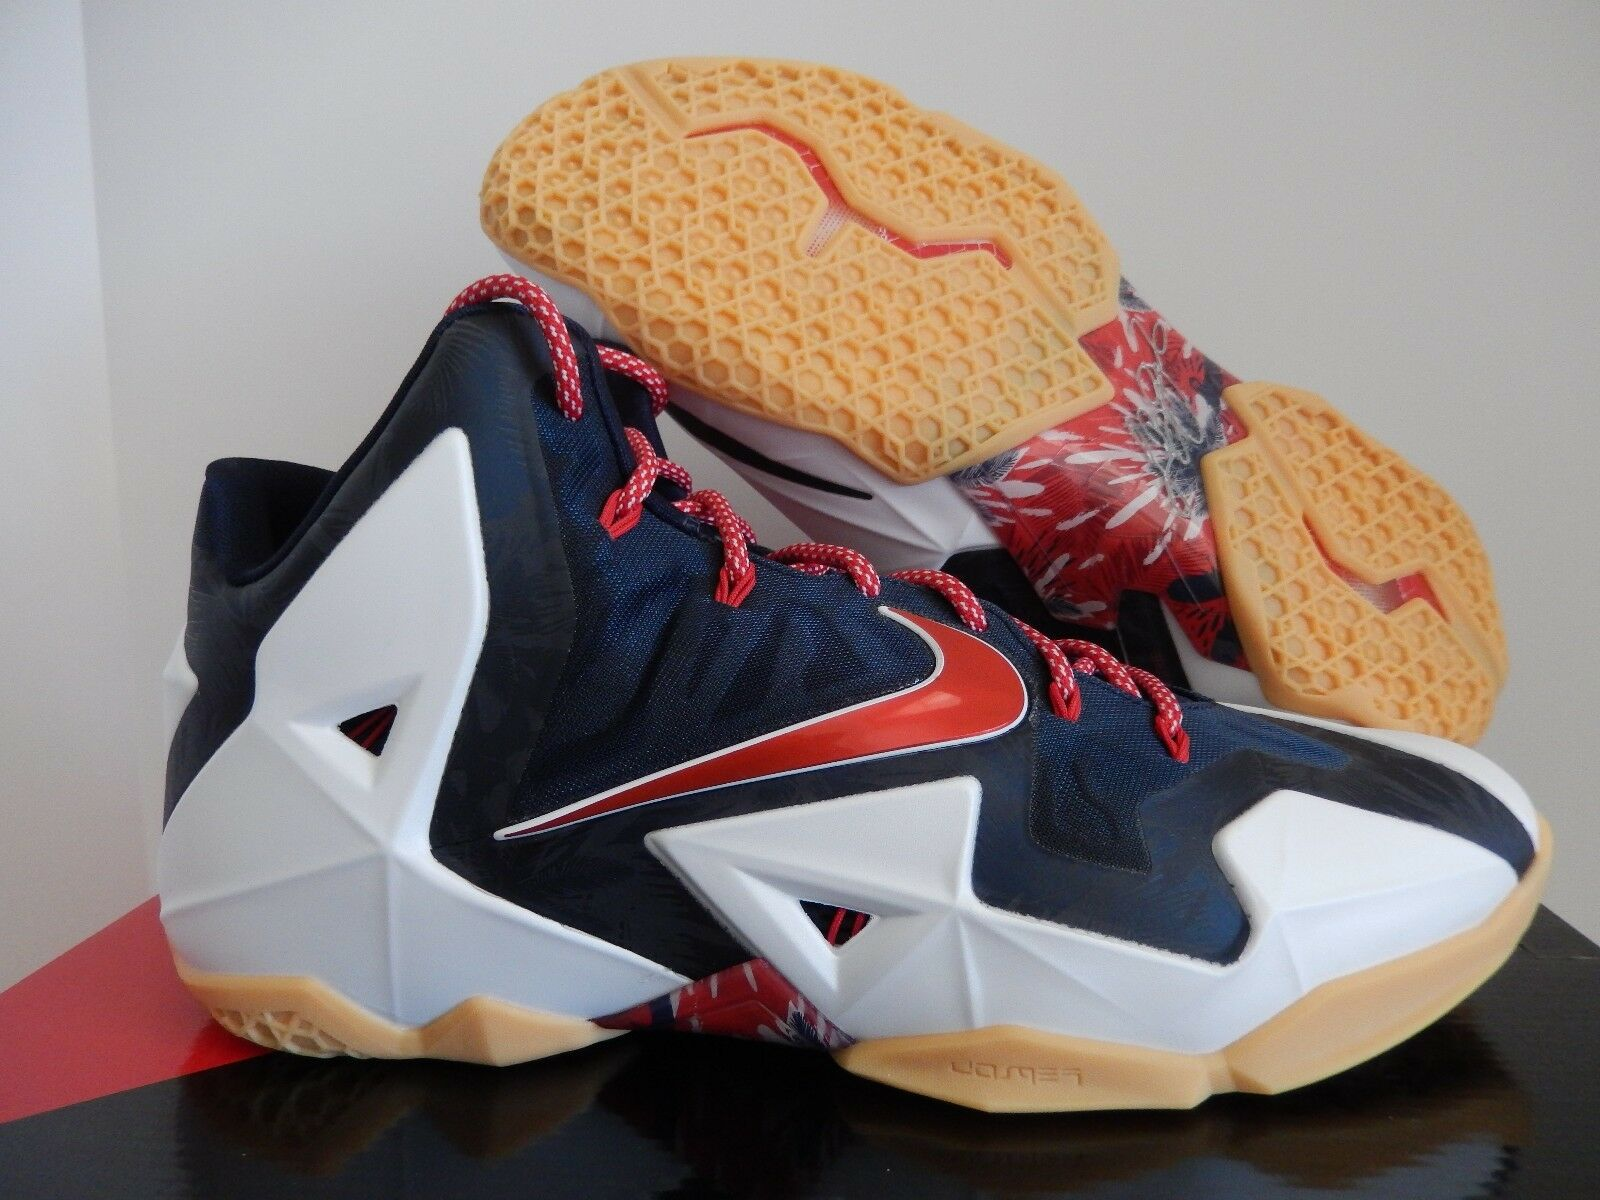 NIKE LEBRON BLUE XI 11 USA WHITE-UNIVERSITY RED-OBSIDIAN NAVY BLUE LEBRON SZ 12 [616175-164] dc6684